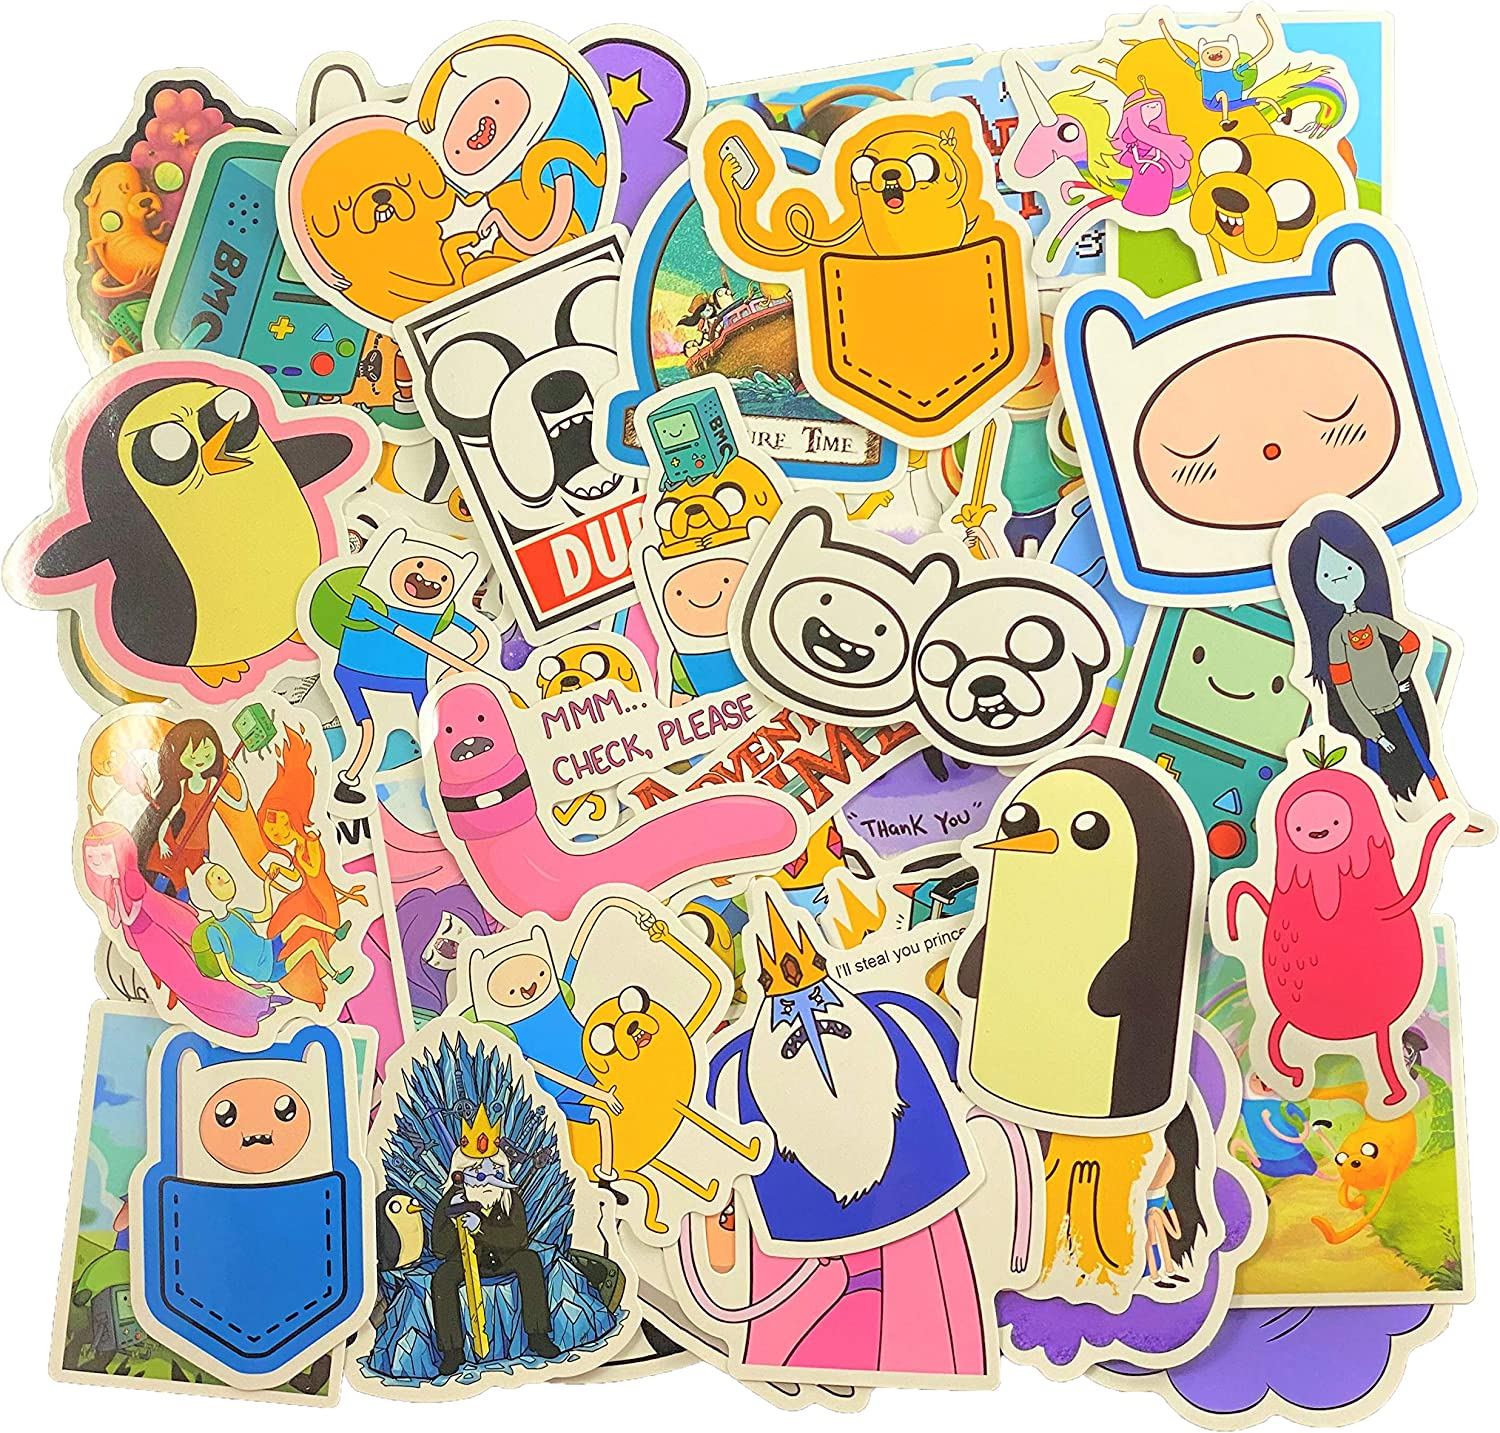 Adventure Time Stickers Pack [66 pcs] Waterproof Vinyl Car Sticker for Laptop Motorcycle Bicycle Luggage Decal Graffiti Patches Skateboard Stickers for Kid and Adult